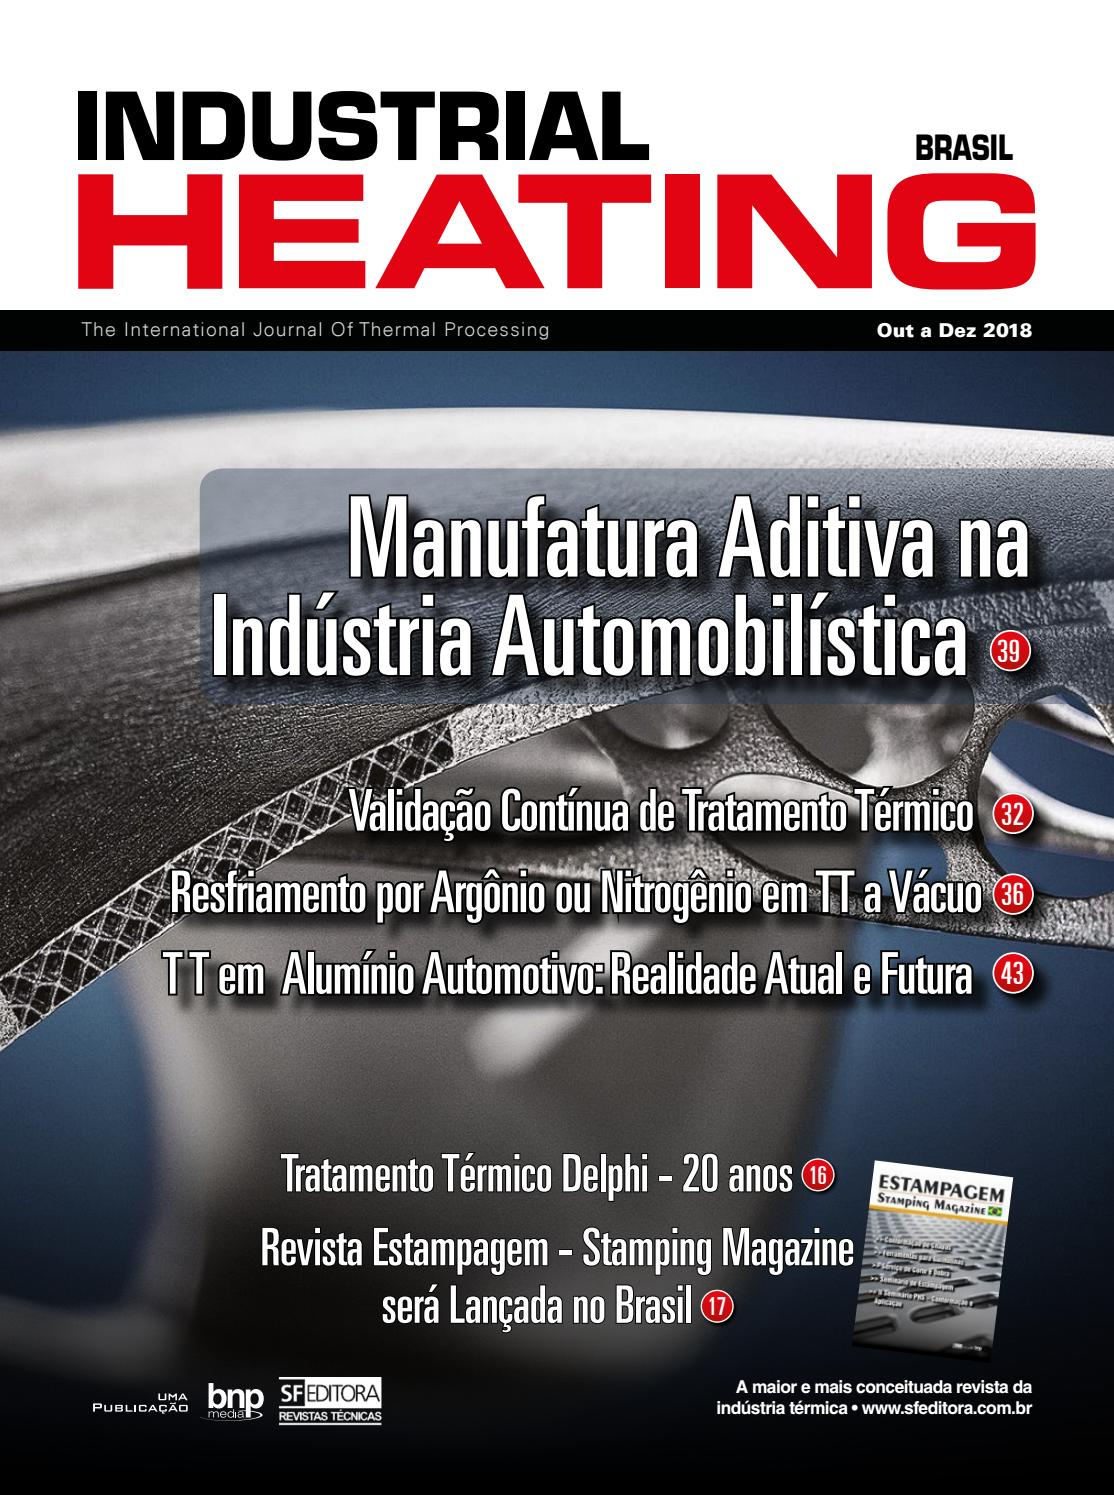 f7d29509ce Revista Industrial Heating - Out a Dez 2018 by SF Editora - issuu